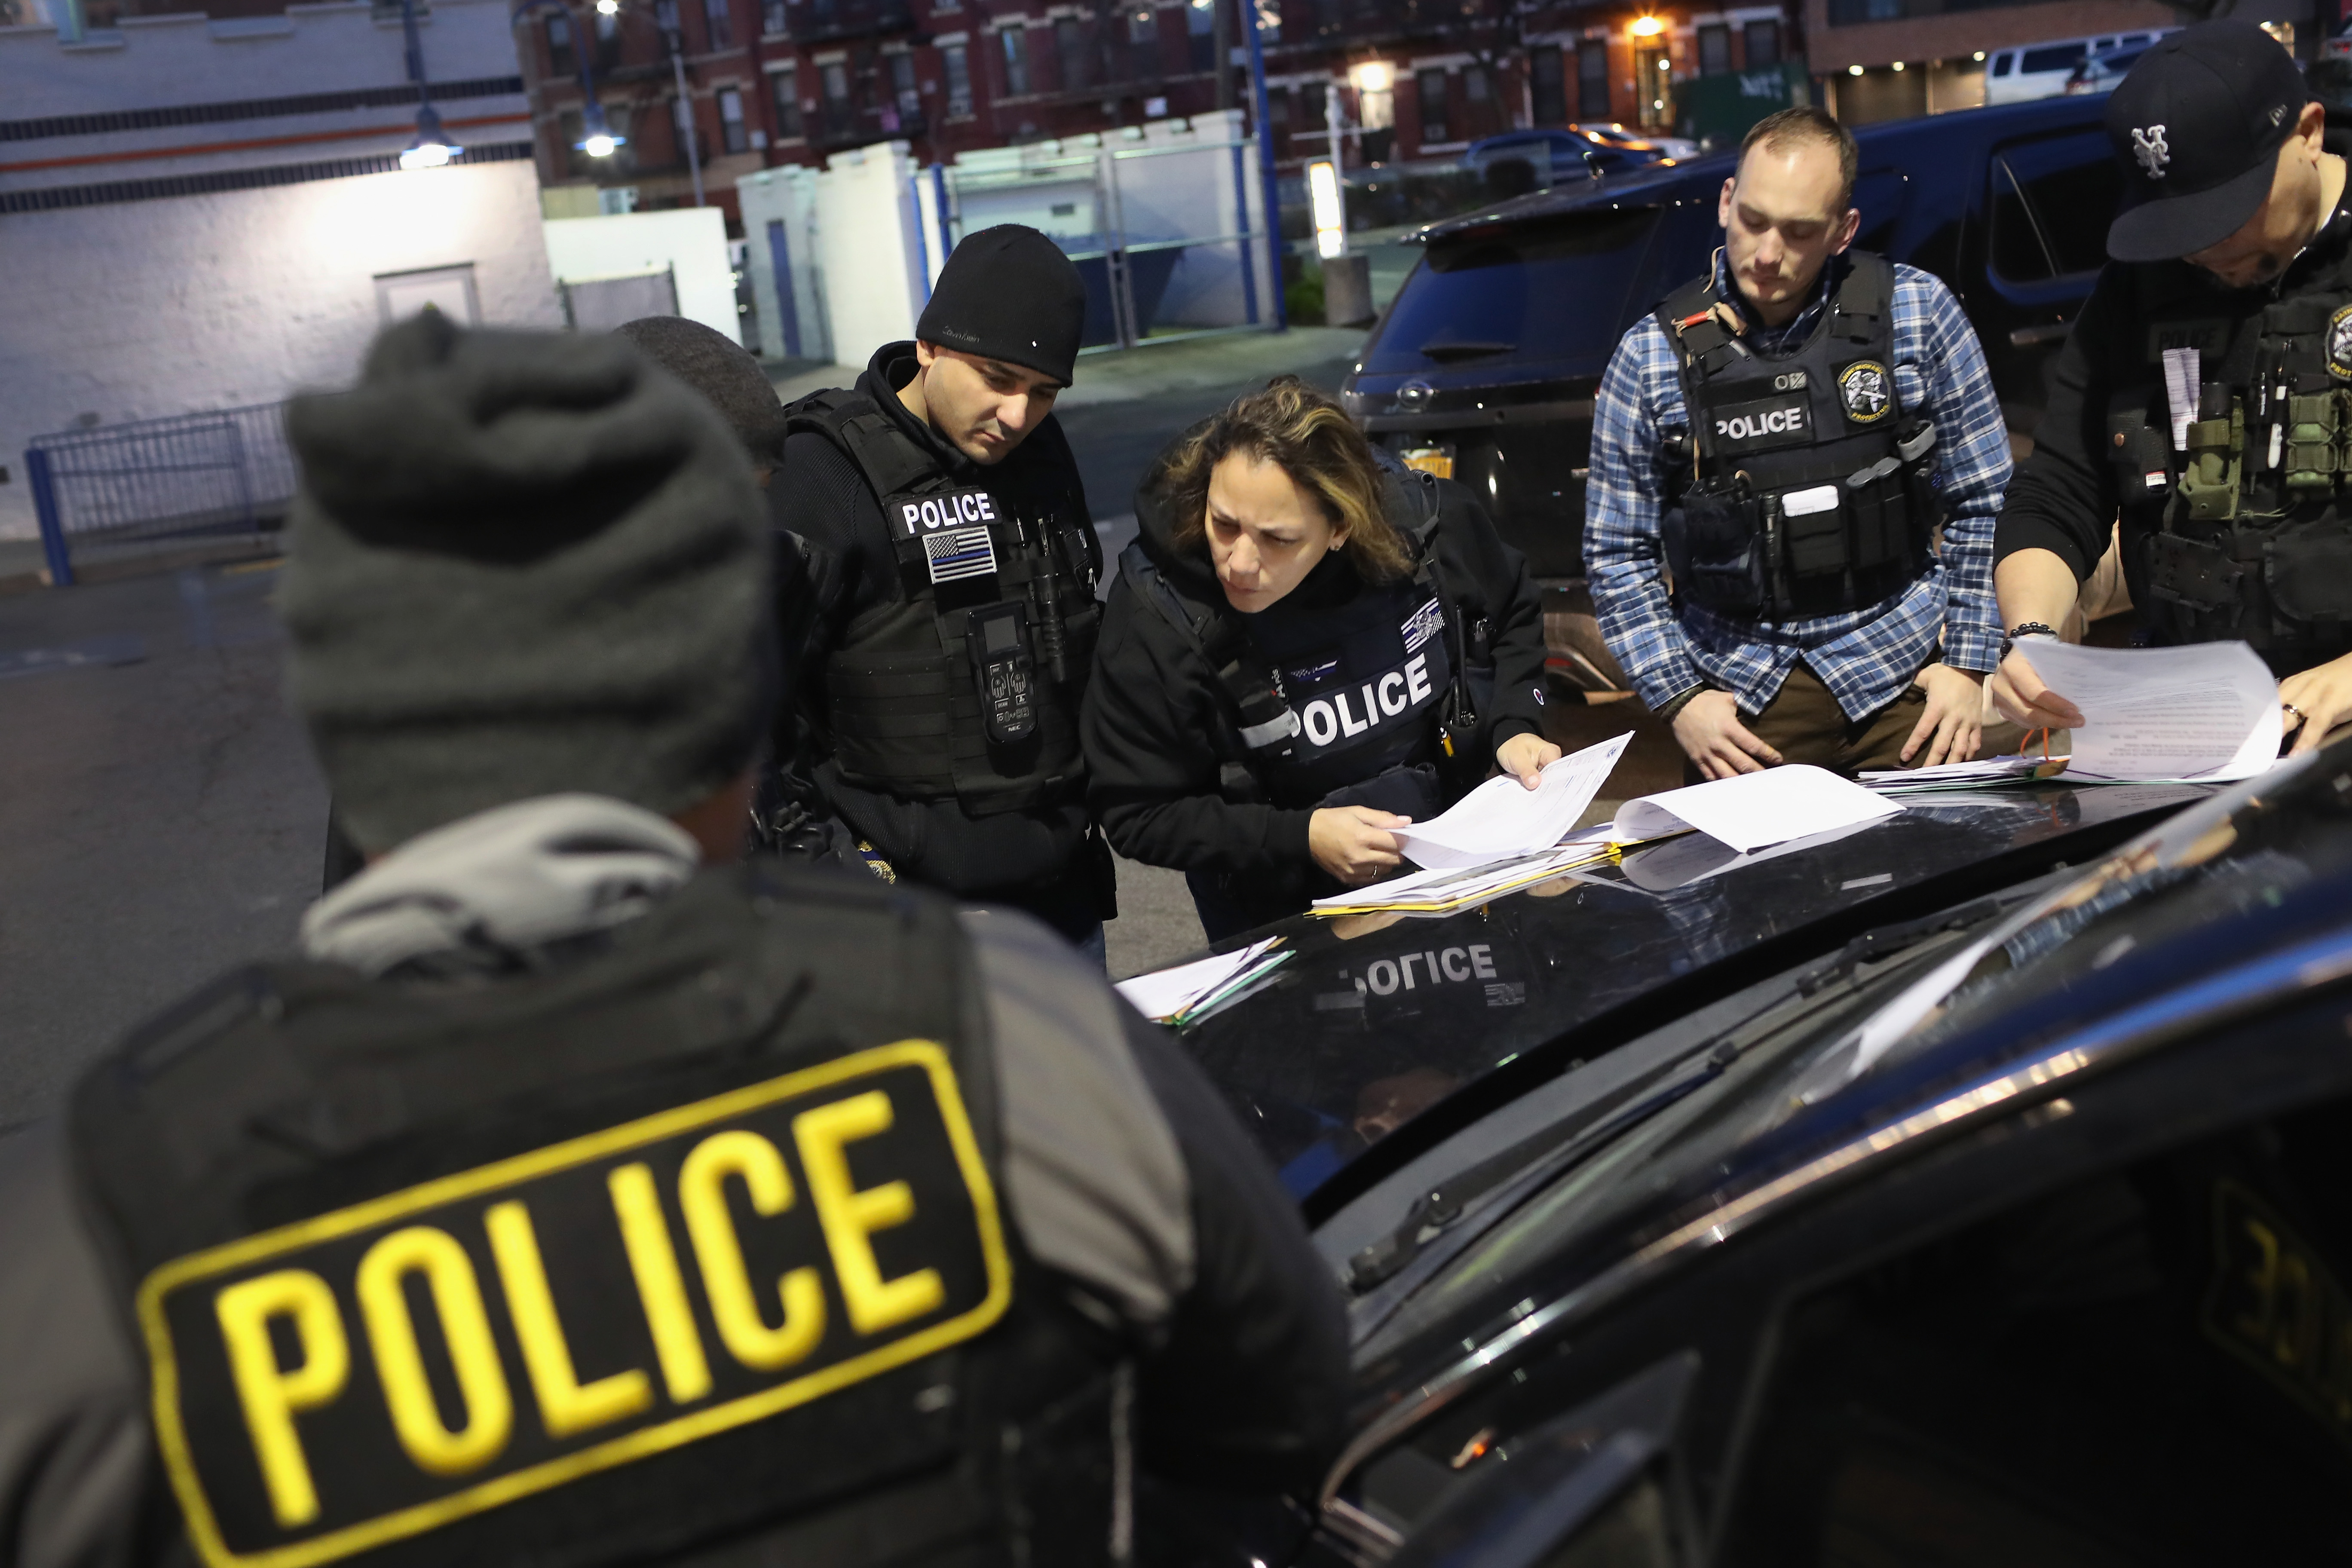 NEW YORK, NY - APRIL 11: U.S. Immigration and Customs Enforcement (ICE), officers prepare for morning raids to arrest undocumented immigrants on April 11, 2018 in New York City. ICE detentions are frequently controversial in New York, considered a